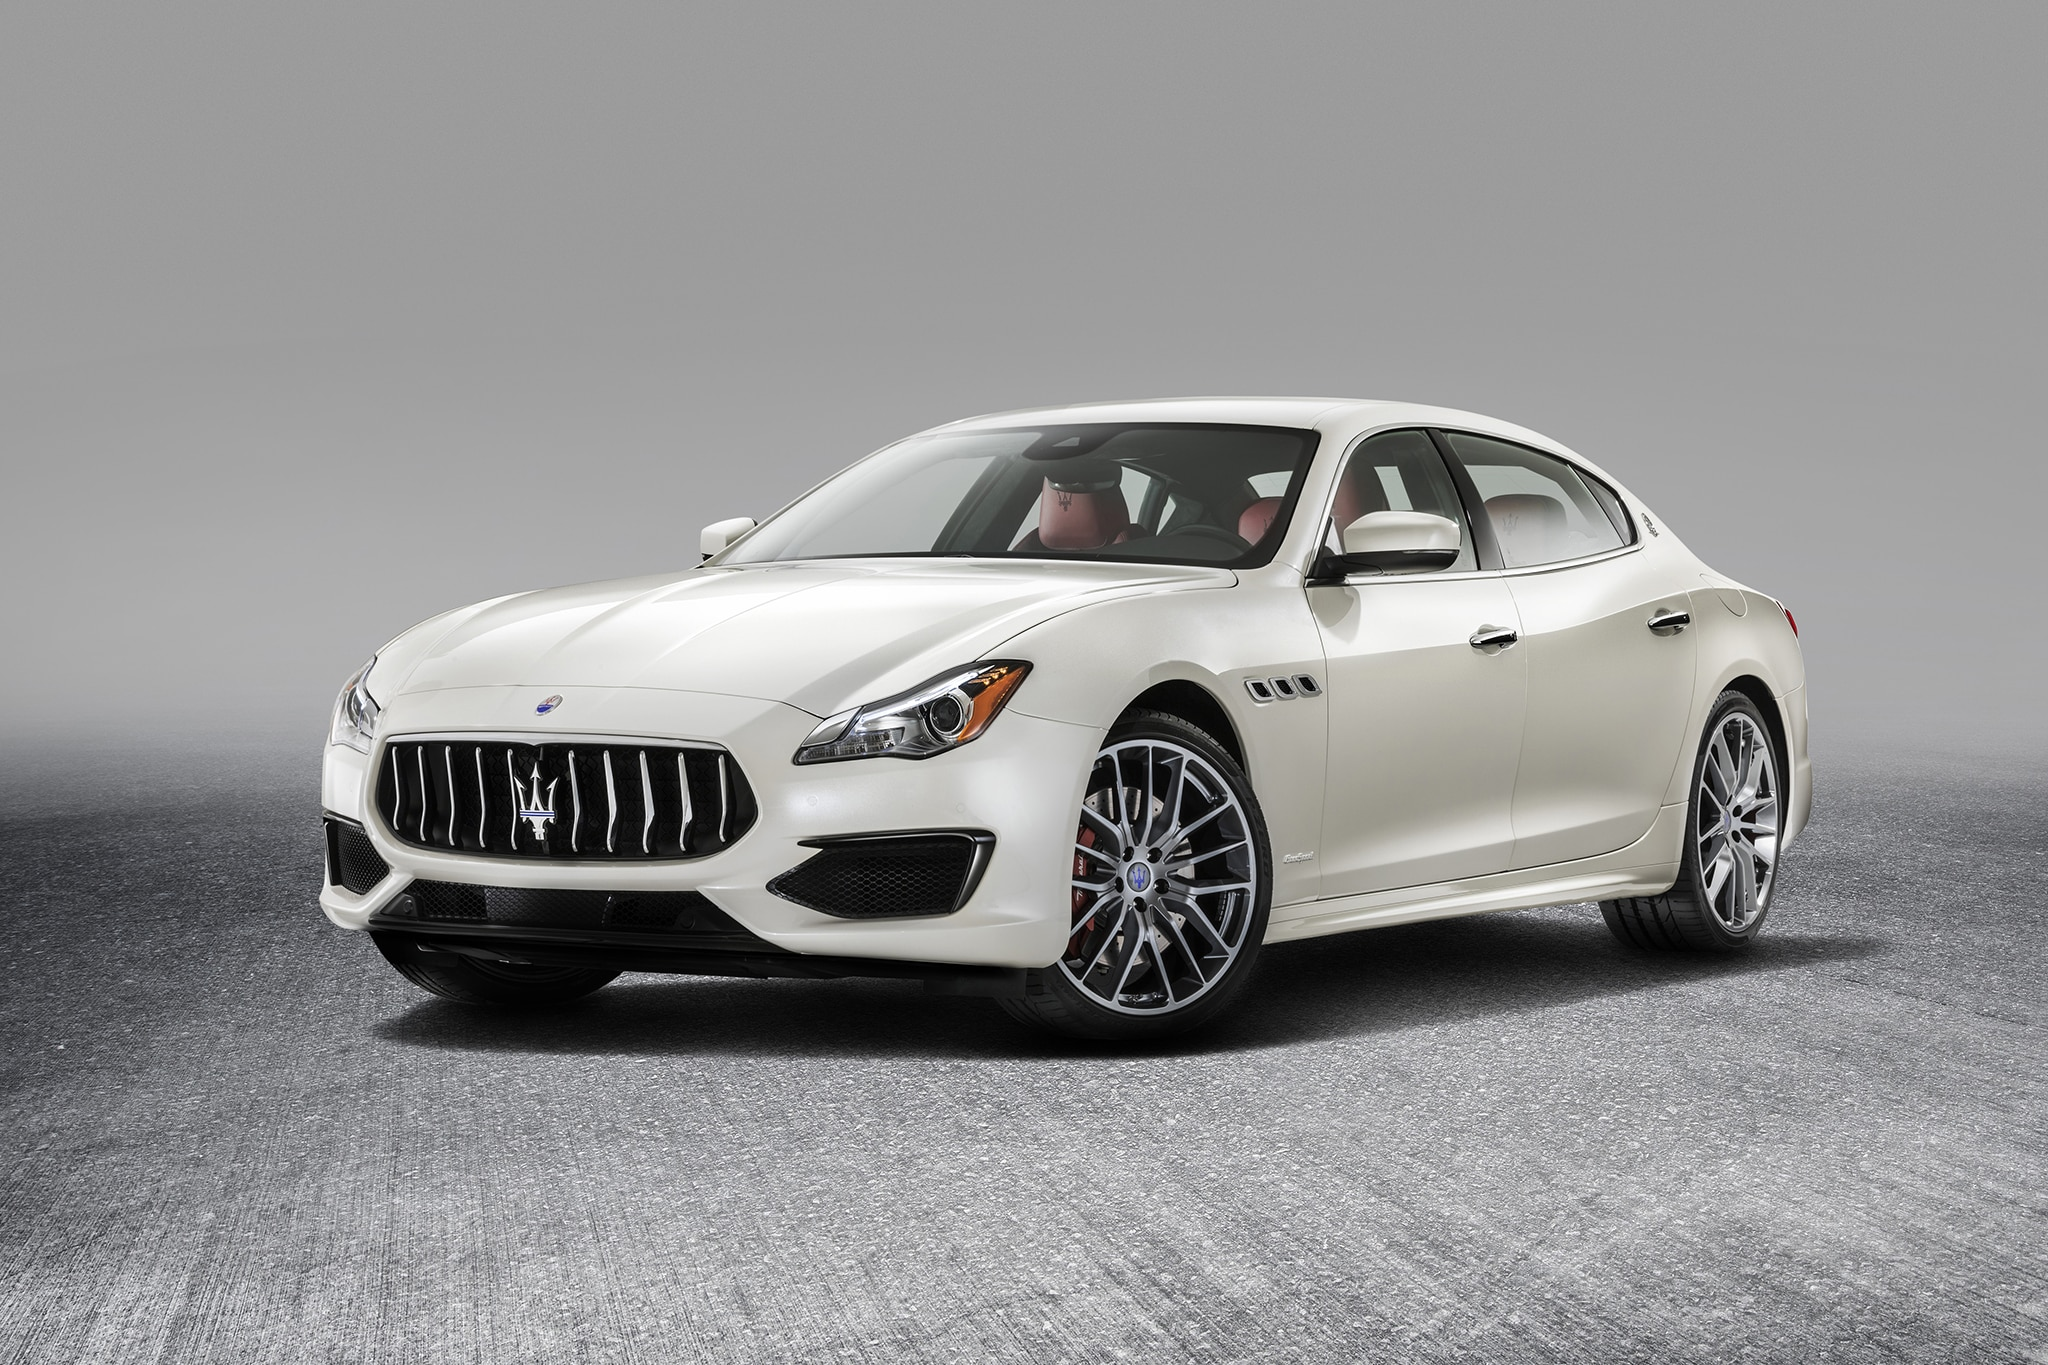 2018 maserati quattroporte gts gransport. simple quattroporte conner golden to 2018 maserati quattroporte gts gransport g